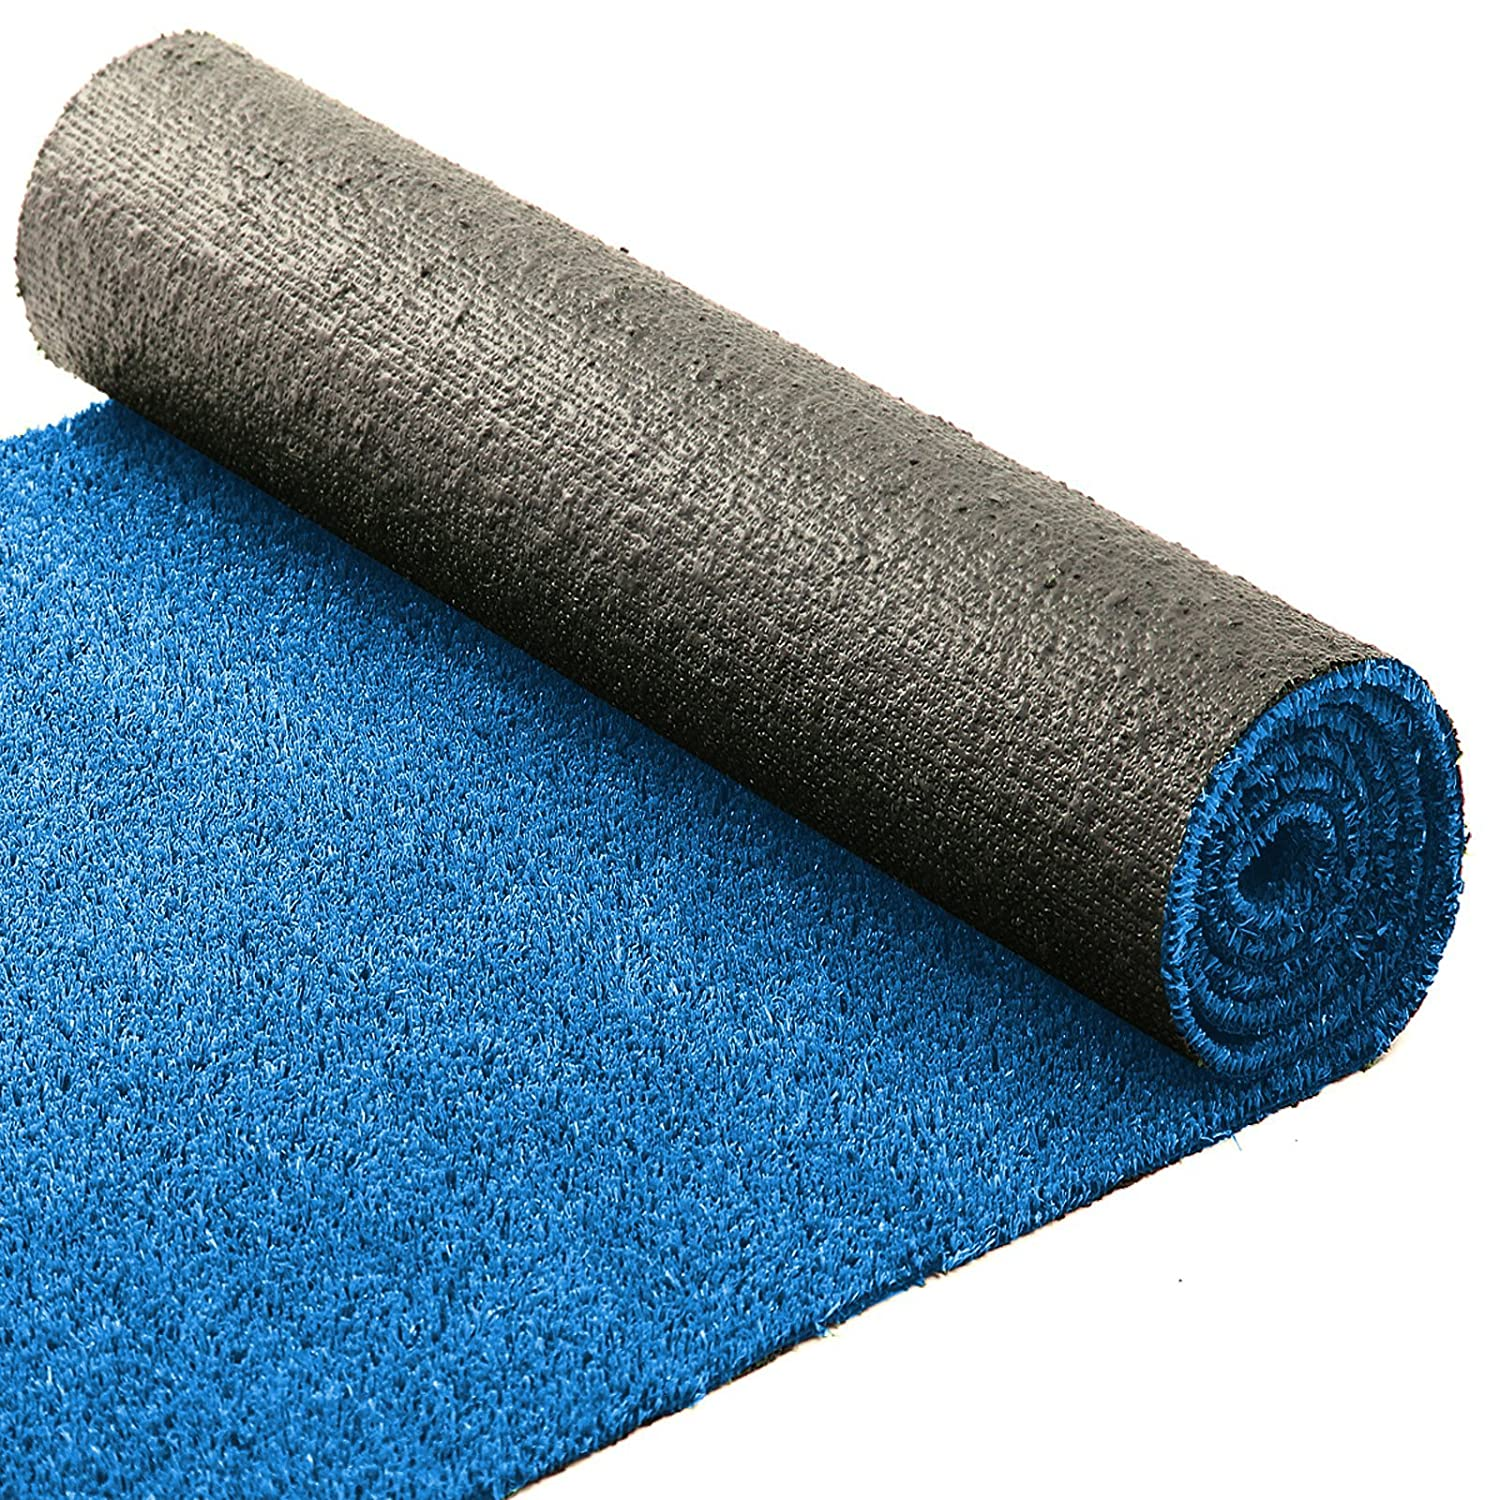 Sports Flooring Astro Turf for Indoor /& Outdoor Green UV Resistant 3 Colours /& Over 20 Sizes 200 x 300 cm casa pura/® Artificial Grass Mat